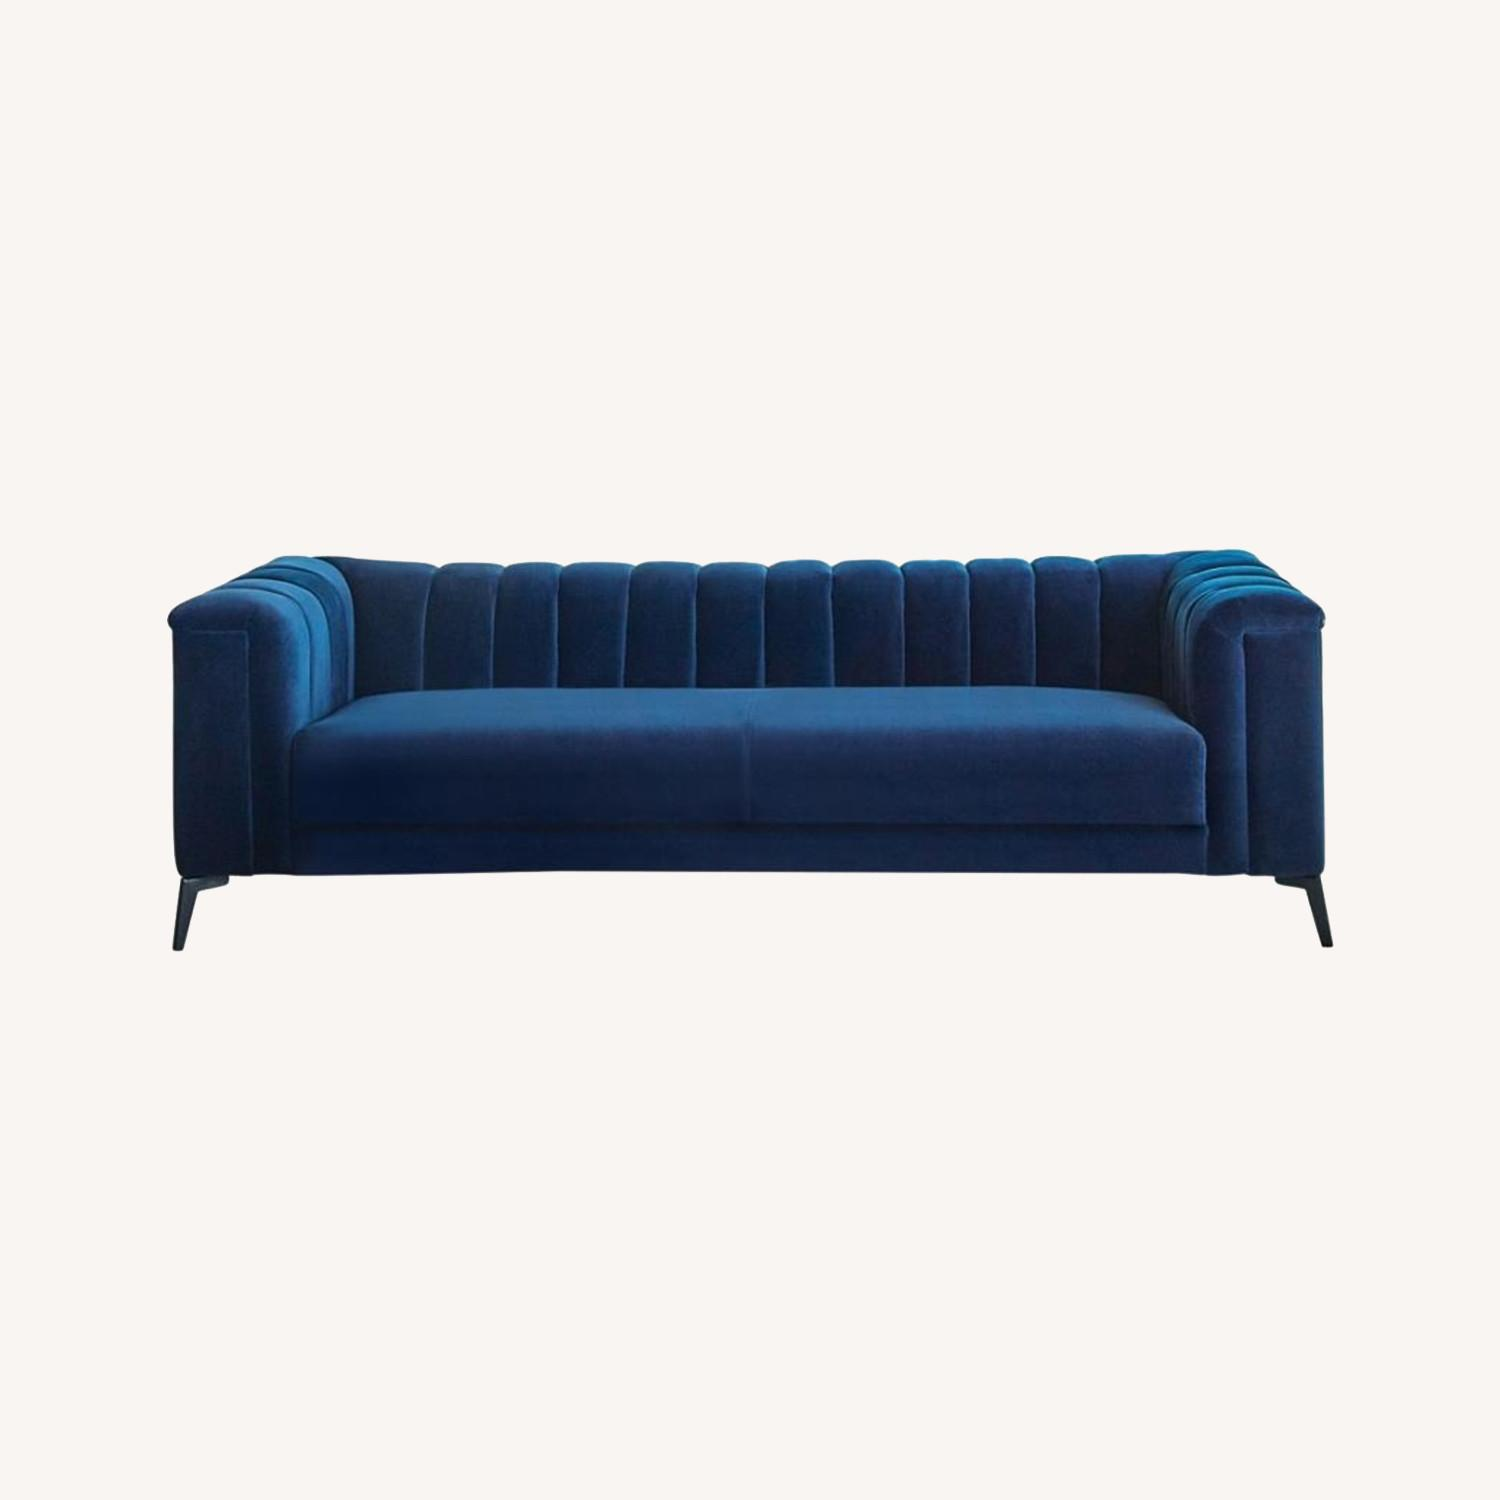 Sofa In Blue Matte Velvet W/ Black Metal Legs - image-3